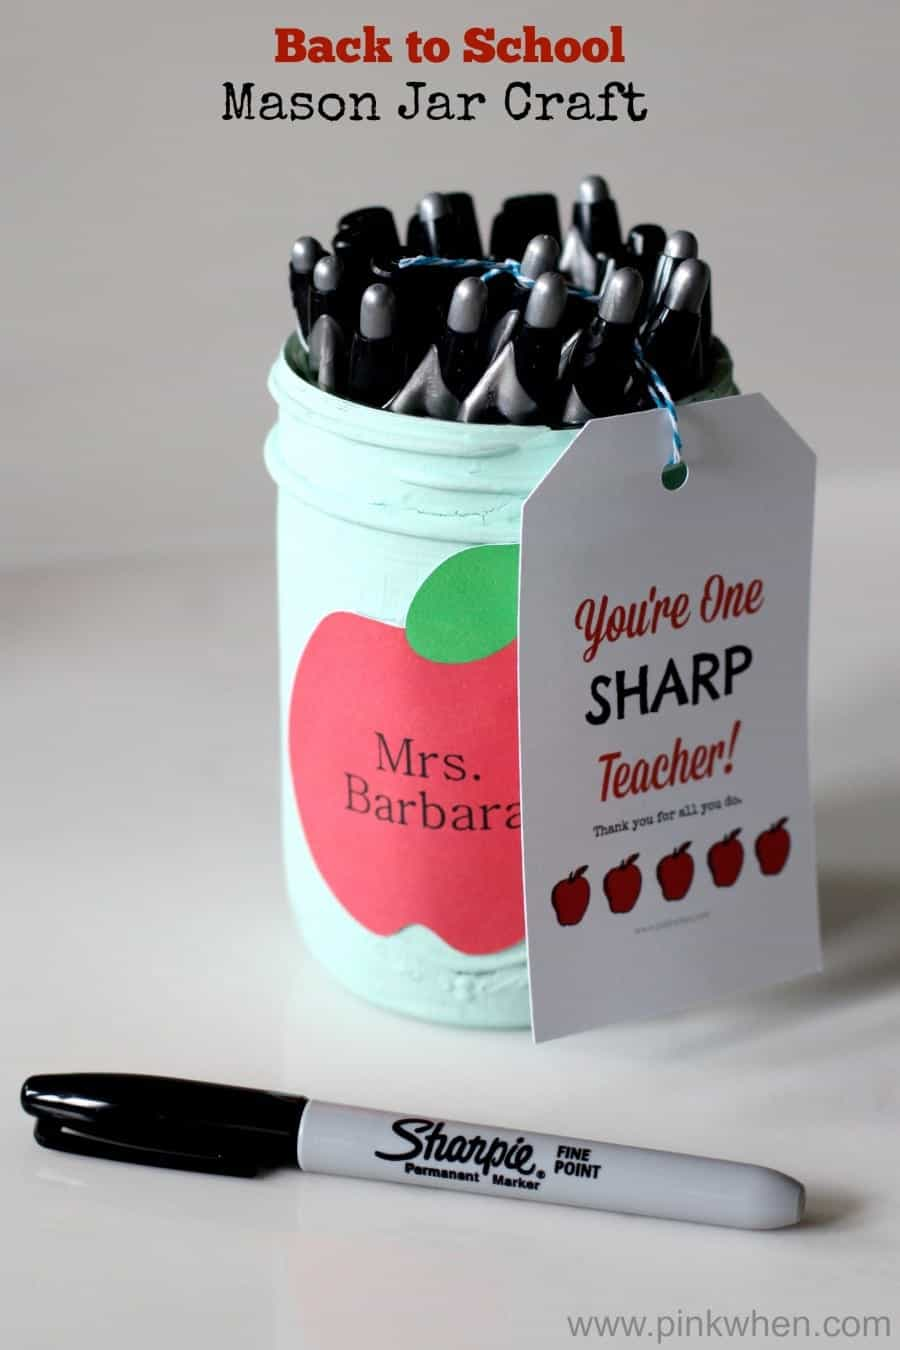 4 Gifts That Teachers Actually Want Told By Teachers